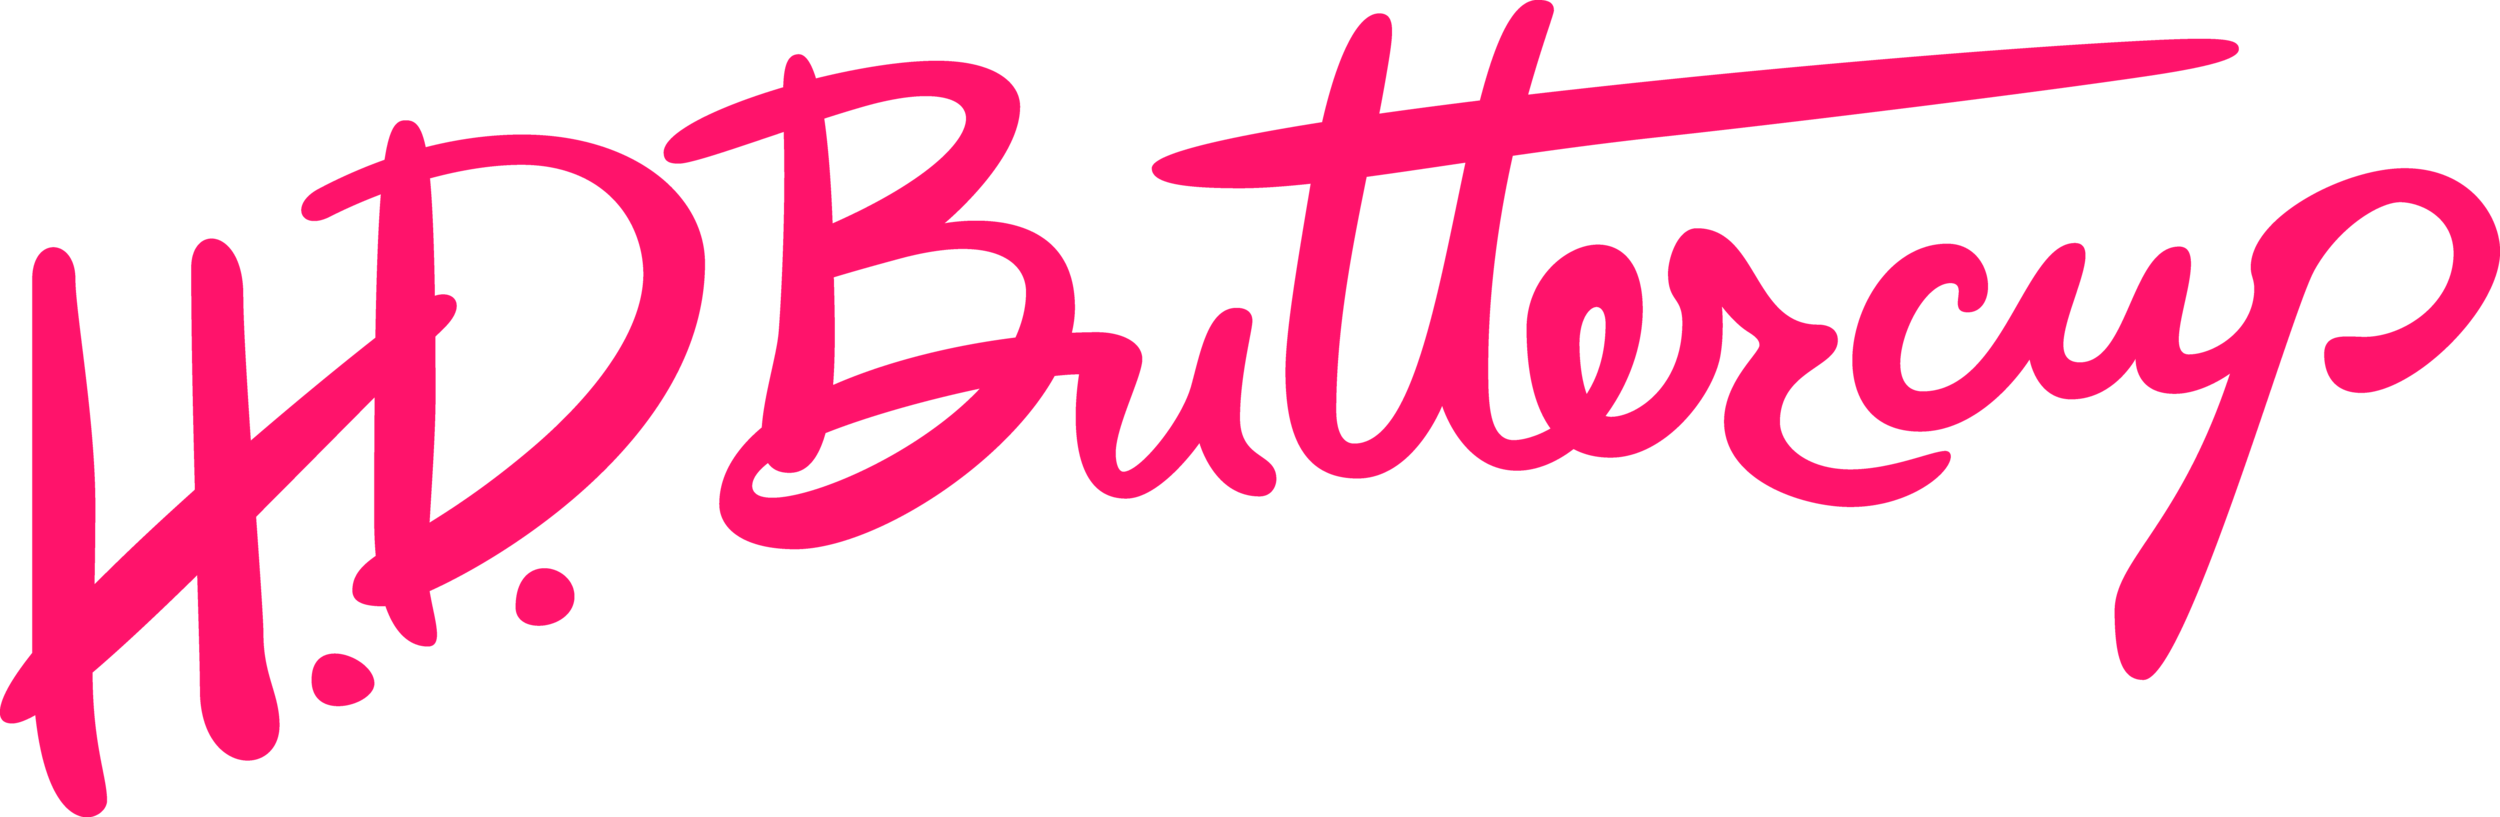 HDButtercup-HIGH RES Logo-01 2.png